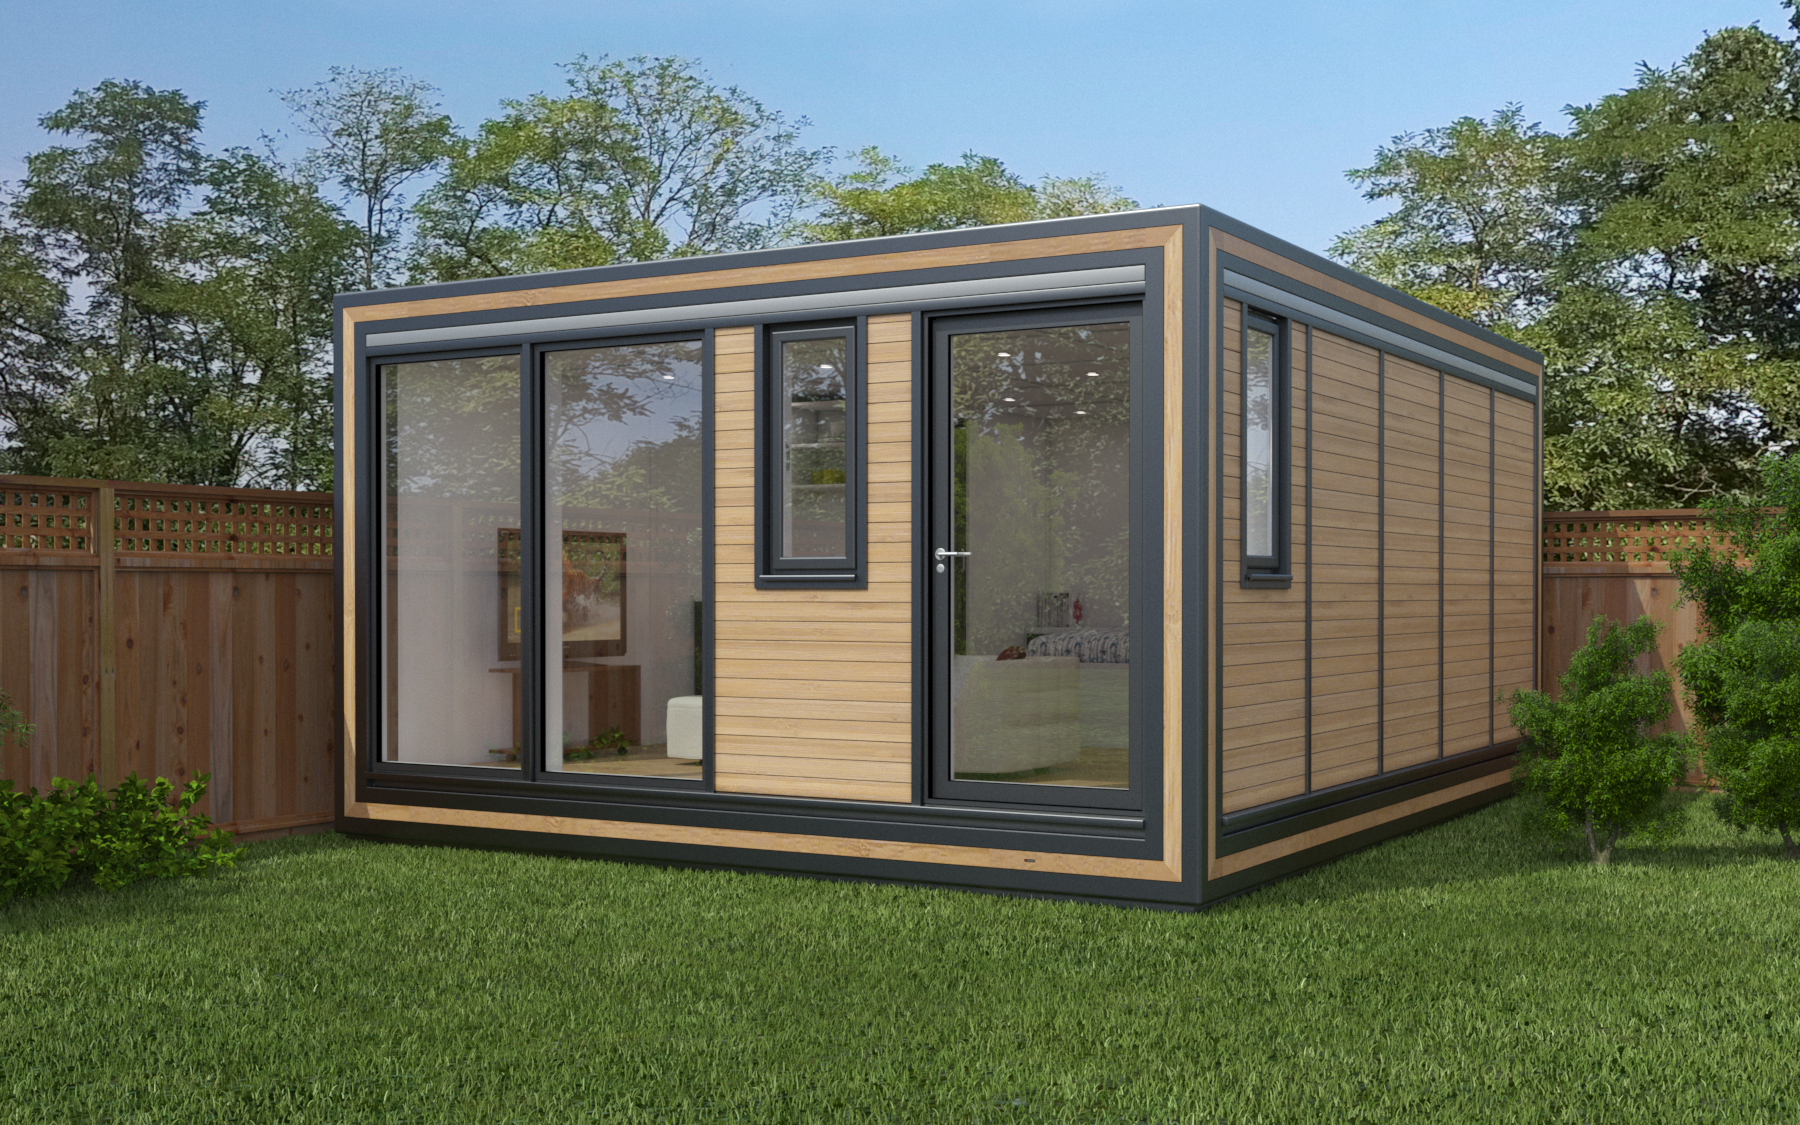 ZEDBOX 450  (4 x 5)  Internal Size: 4259 x 5330  External Size: 4279 x 5800  Bed Options: Single or Double  Kitchen Options: Micro Kitchen or Kitchen  Wet Room Options: Yes  Portico: No  Price:  £38,000    Optional Extras    Request Zedbox Catalogue